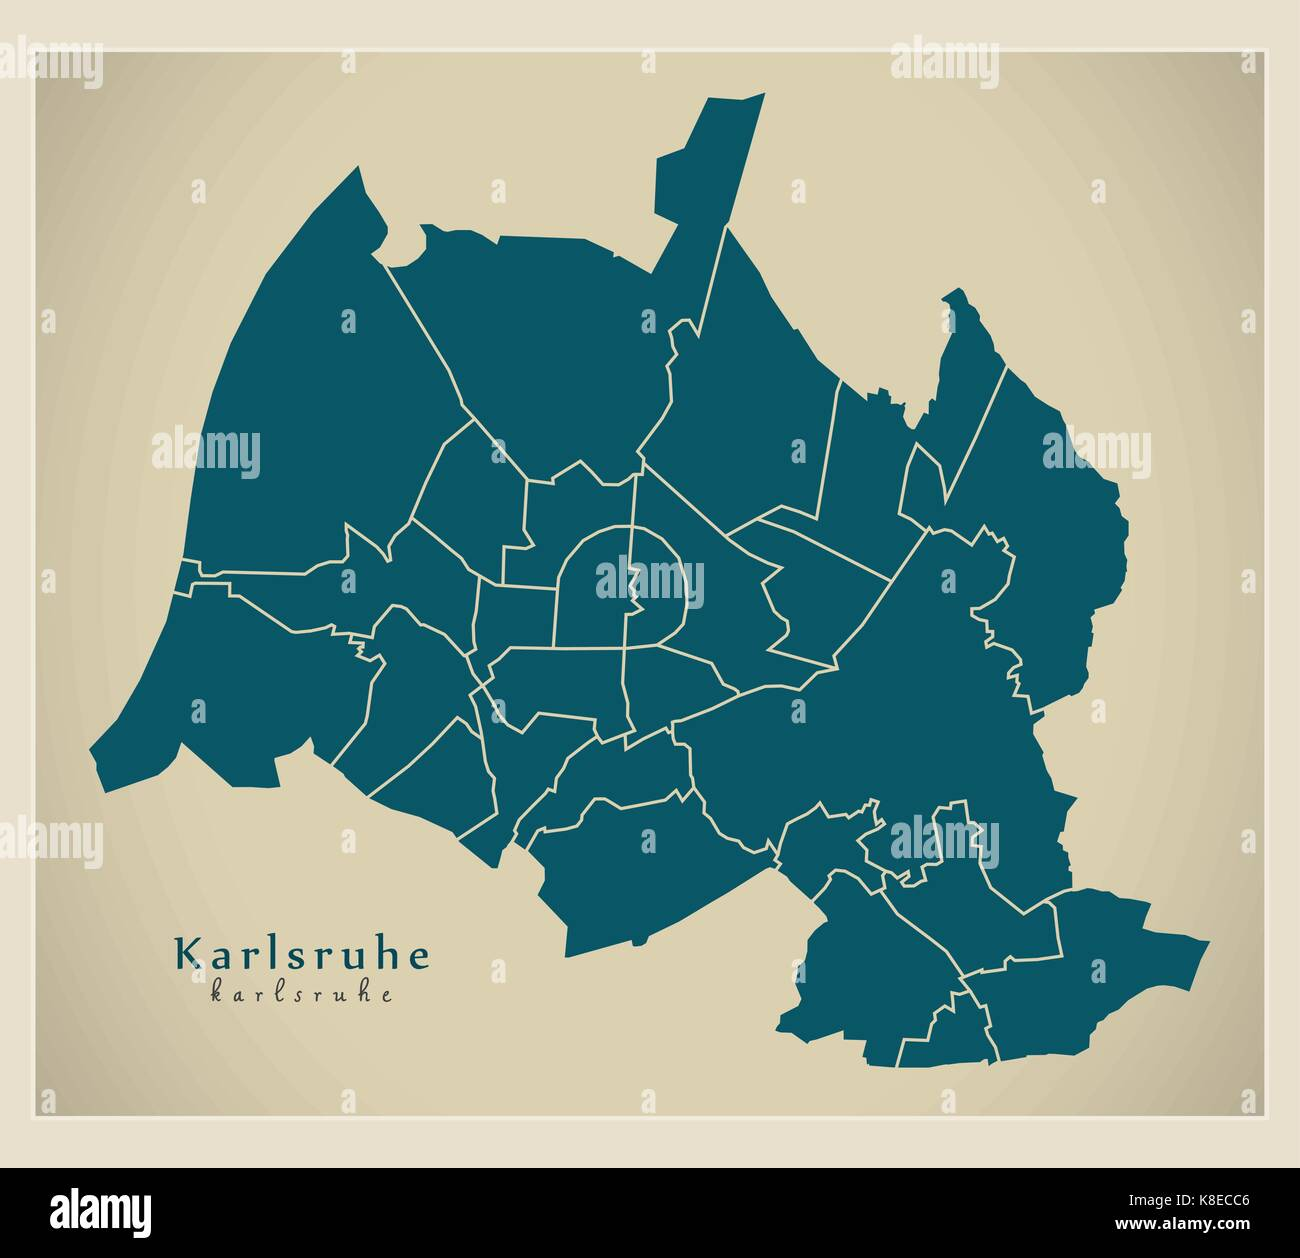 Modern City Map Karlsruhe city of Germany with boroughs DE Stock